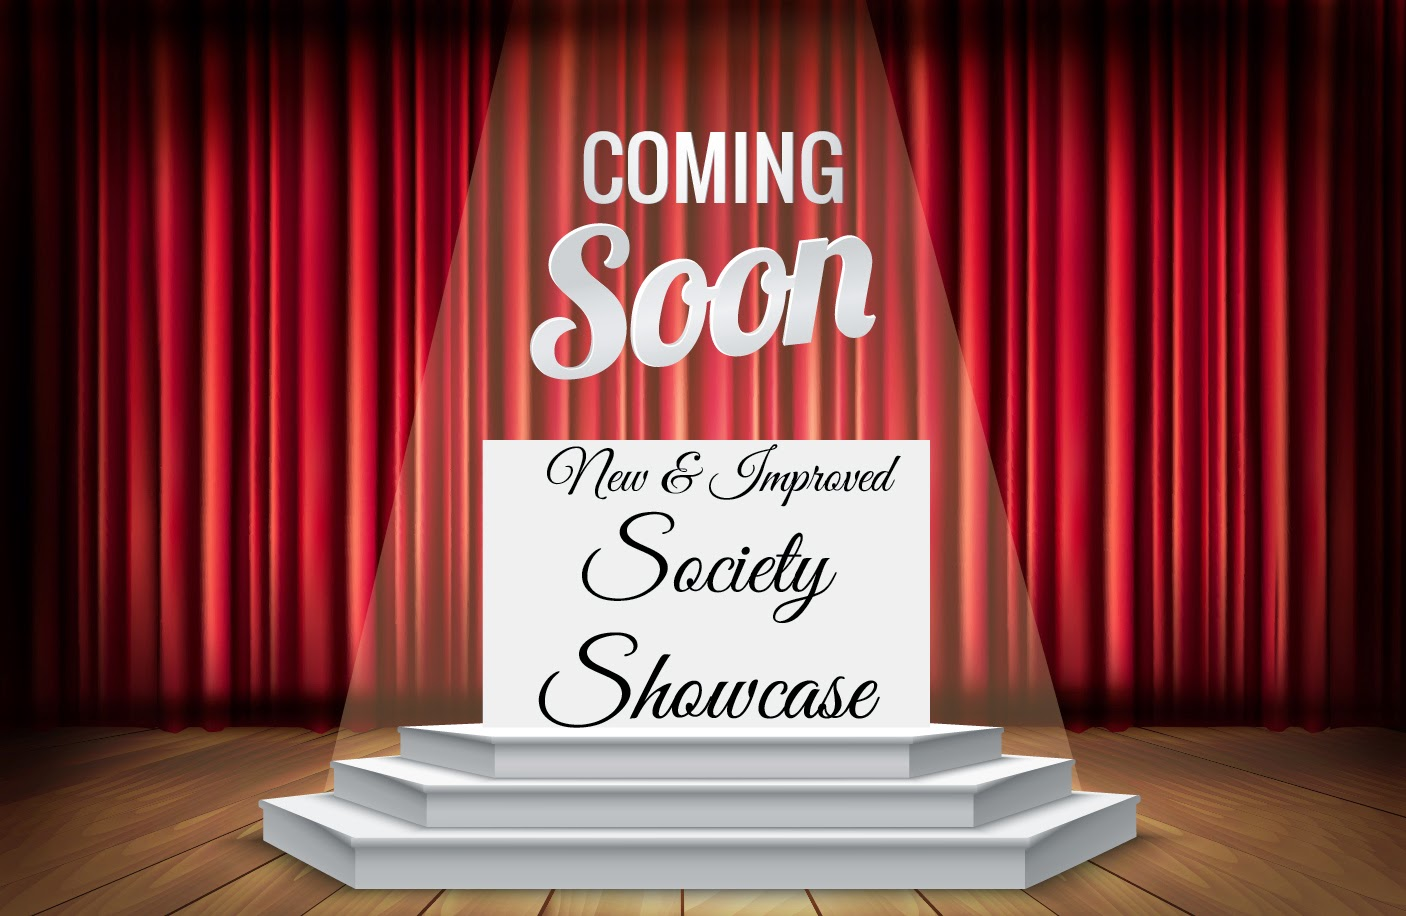 Society Showcase Coming Soon